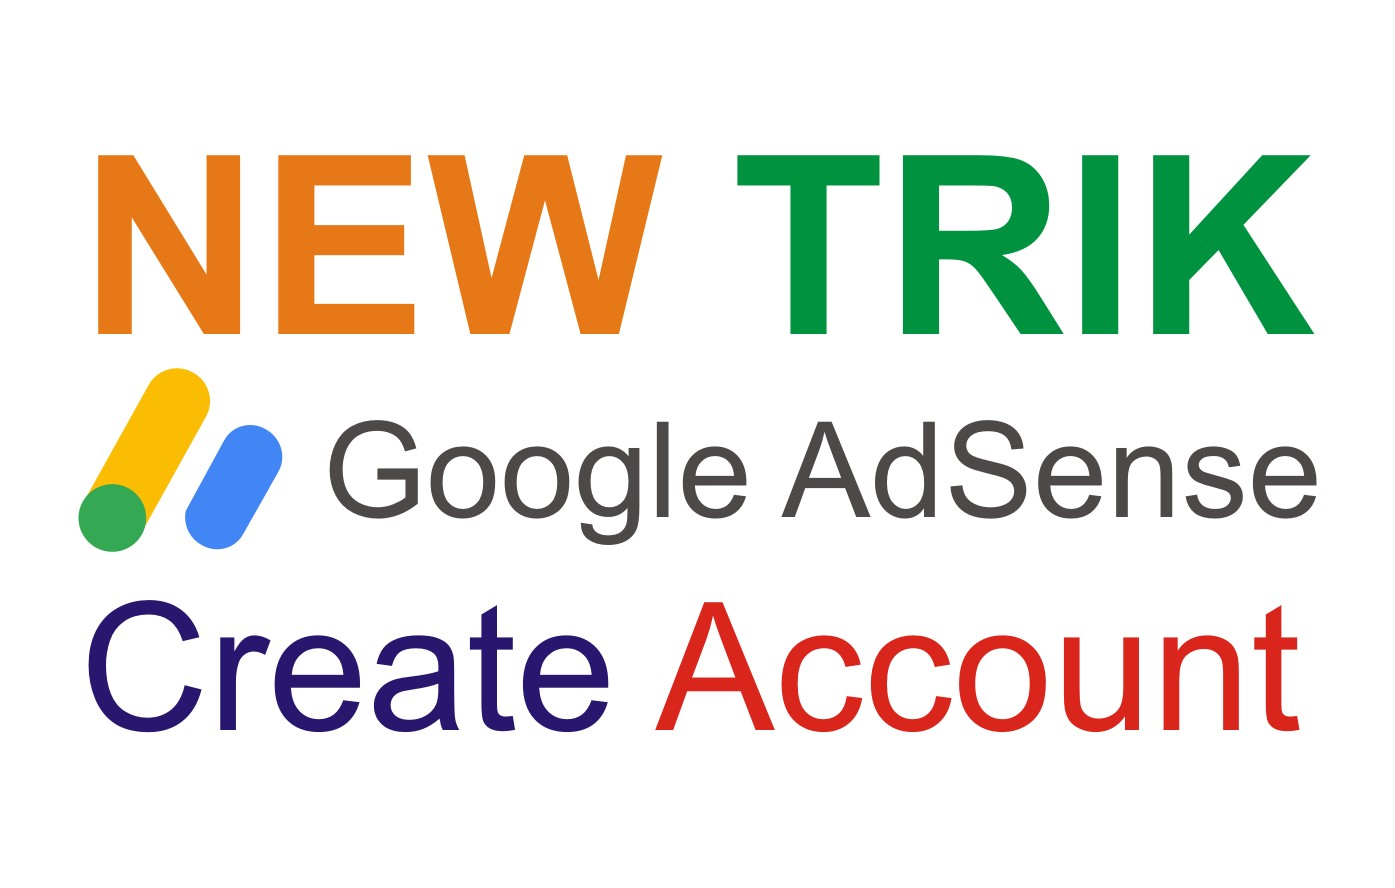 Gambar tulisan new trik google adsense Create Account